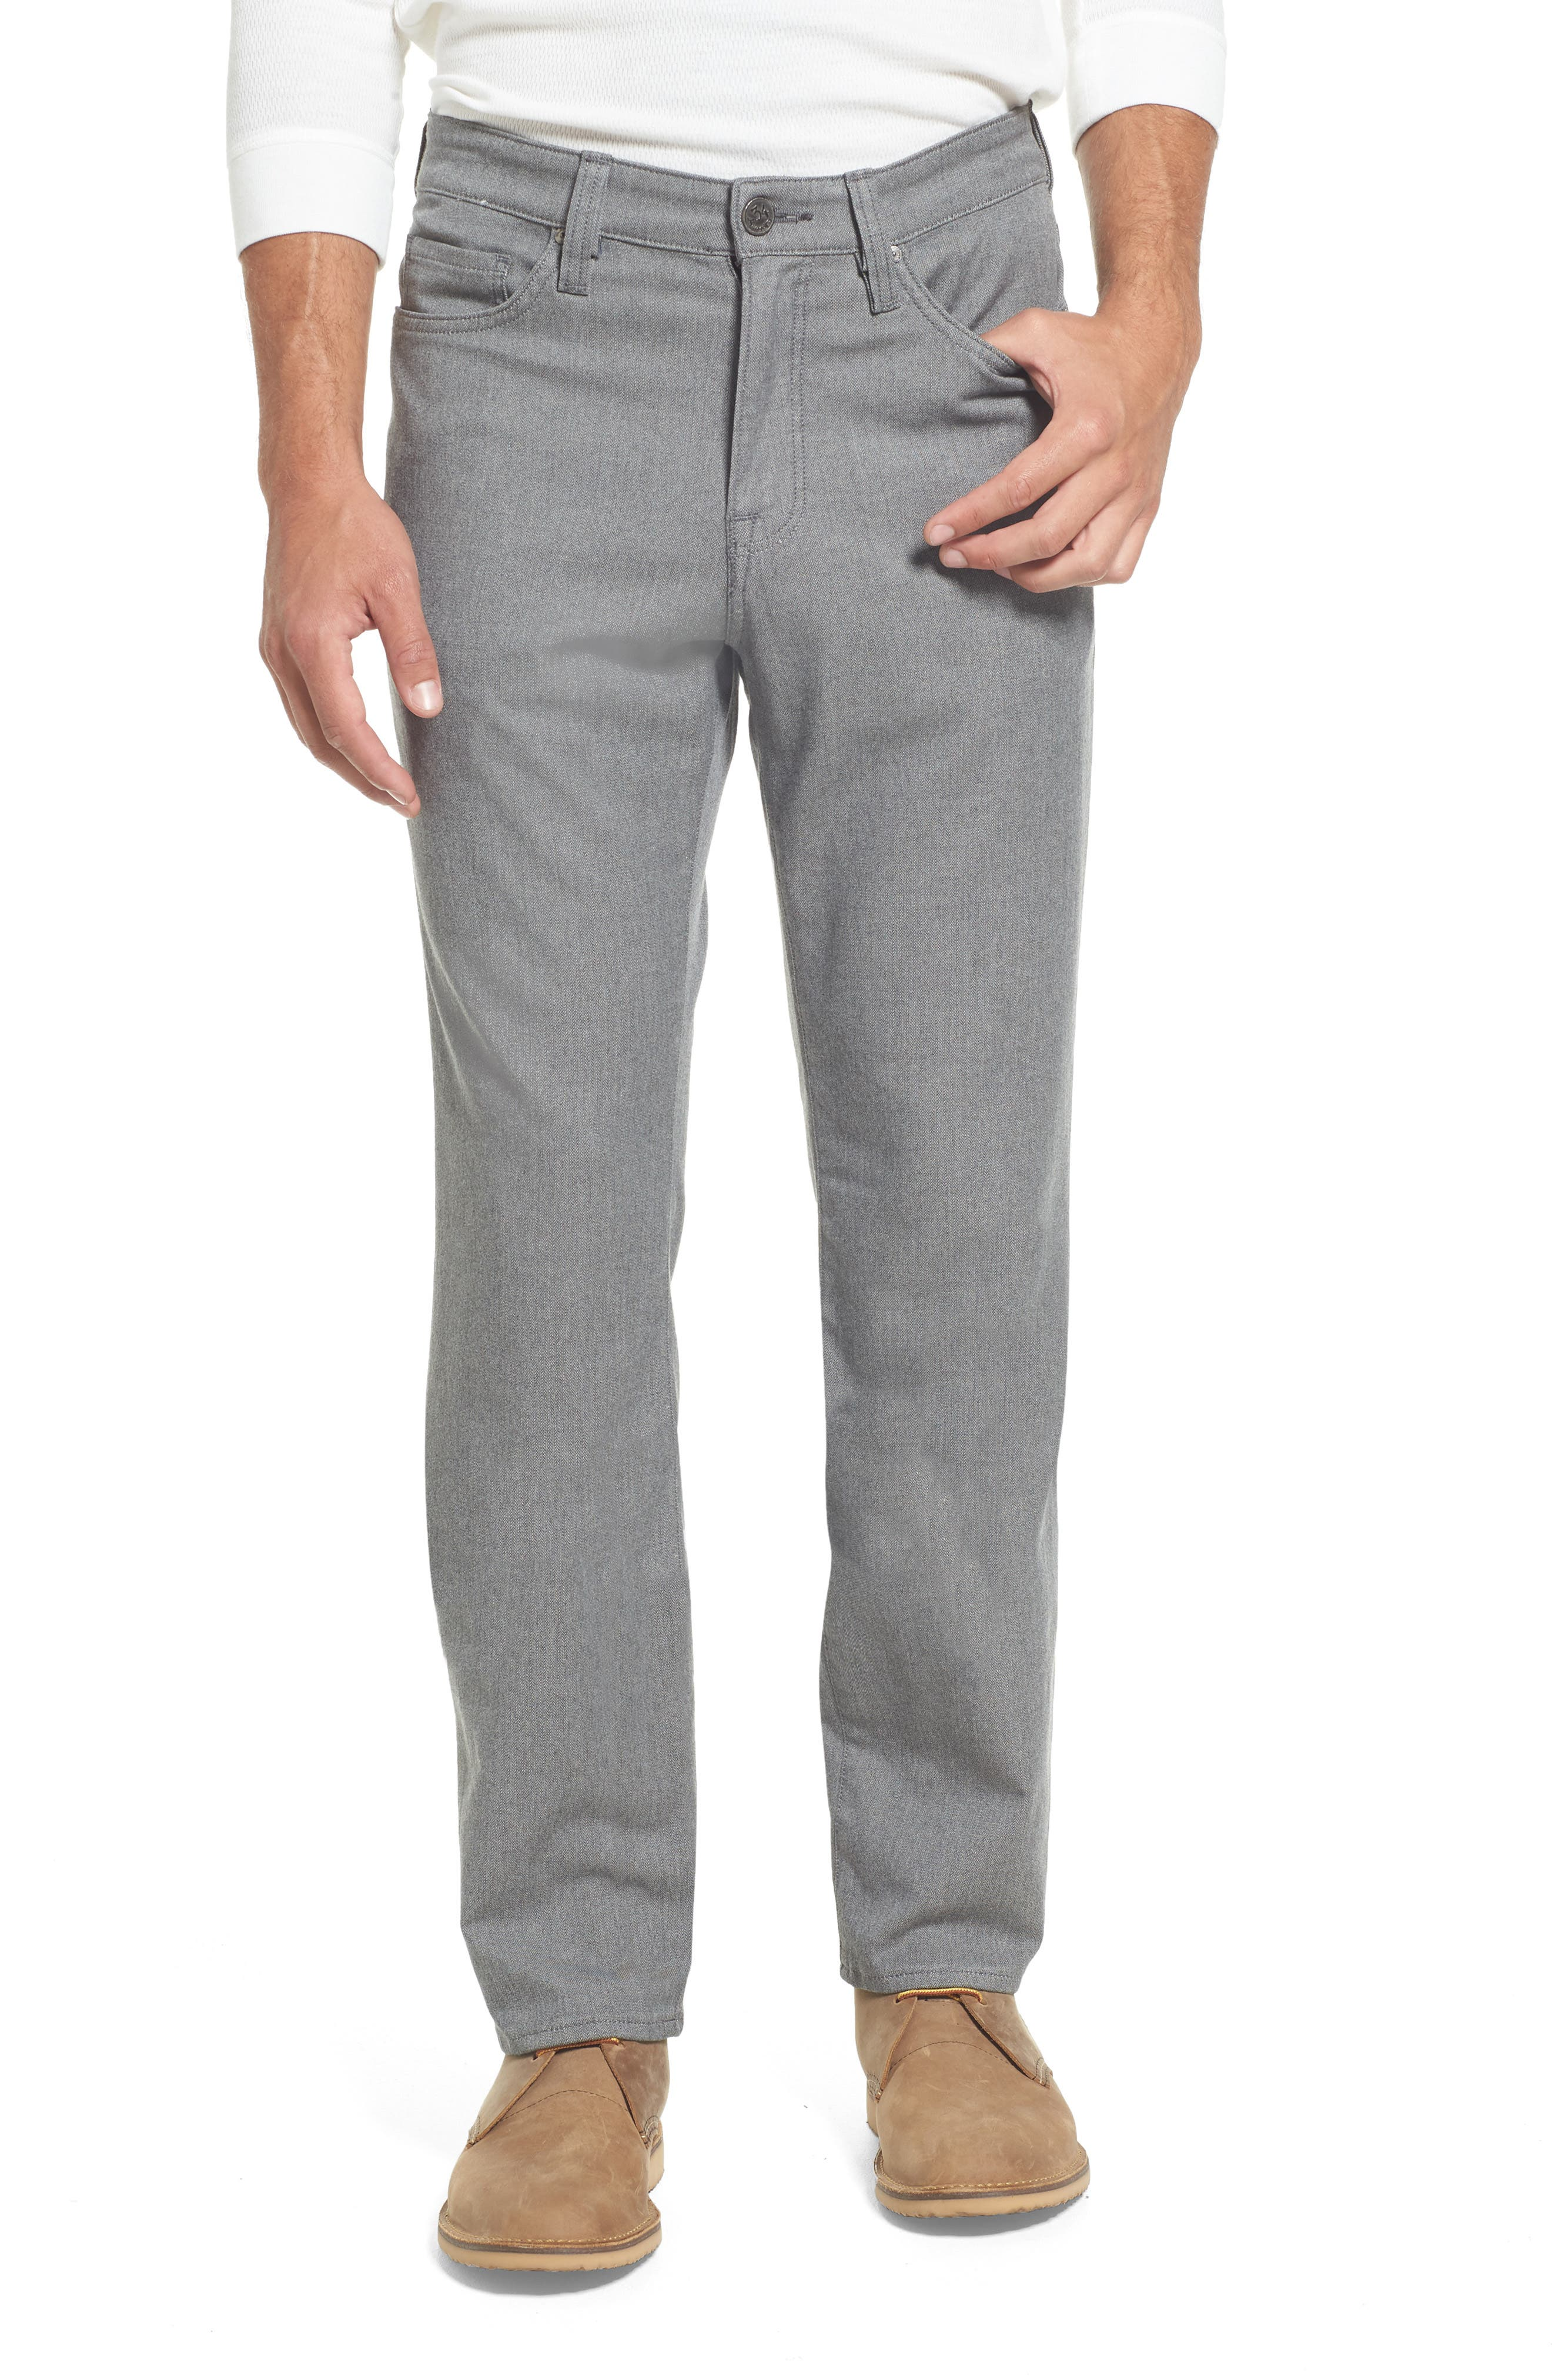 Charisma Relaxed Fit Jeans,                         Main,                         color, Grey Winter Twill